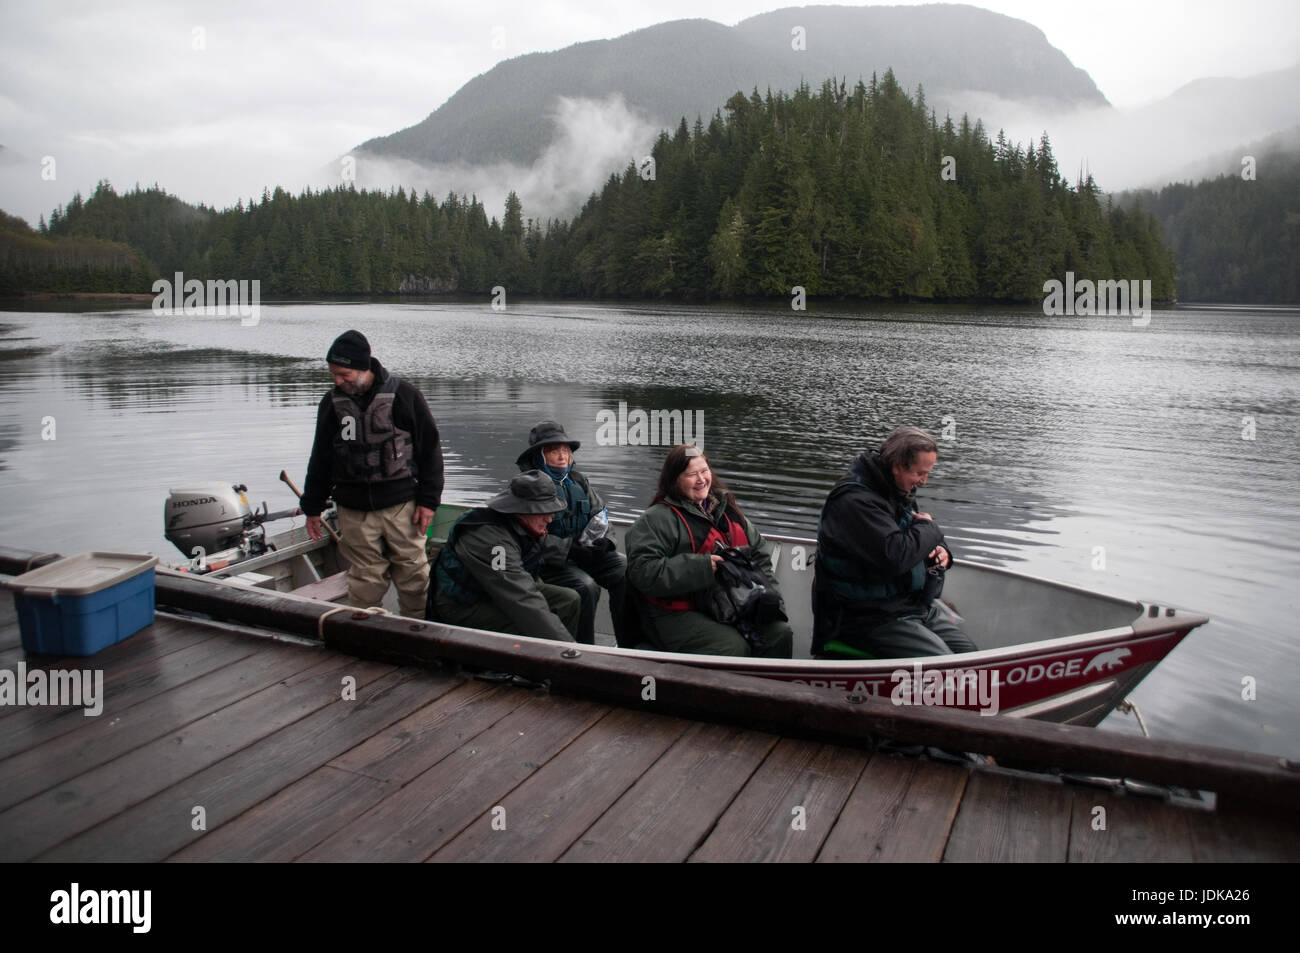 Tourists in a motorboat embarking on a bear viewing ecotour in the Great Bear Rainforest, British Columbia, Canada. - Stock Image